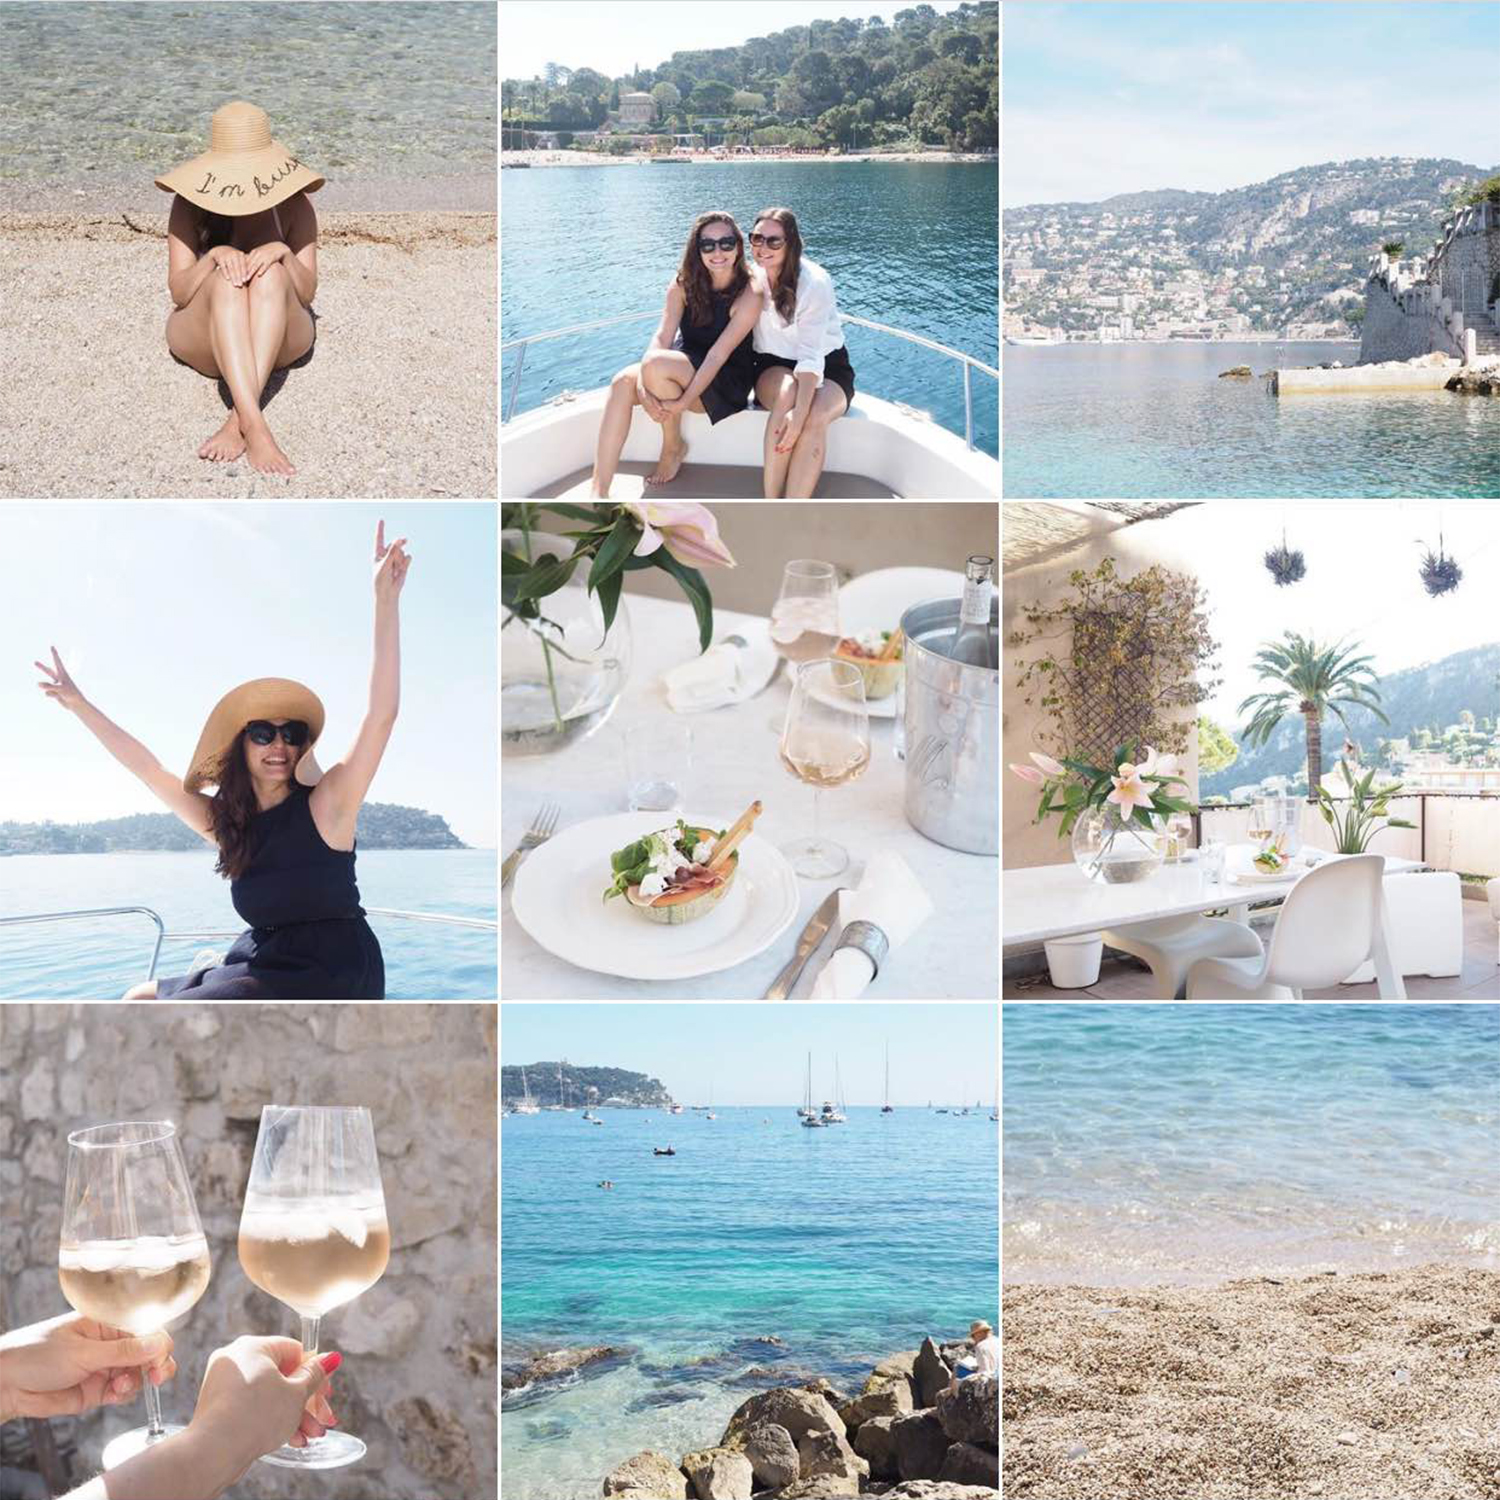 Follow Char and the city on Instagram - lovely travel and interior design pics